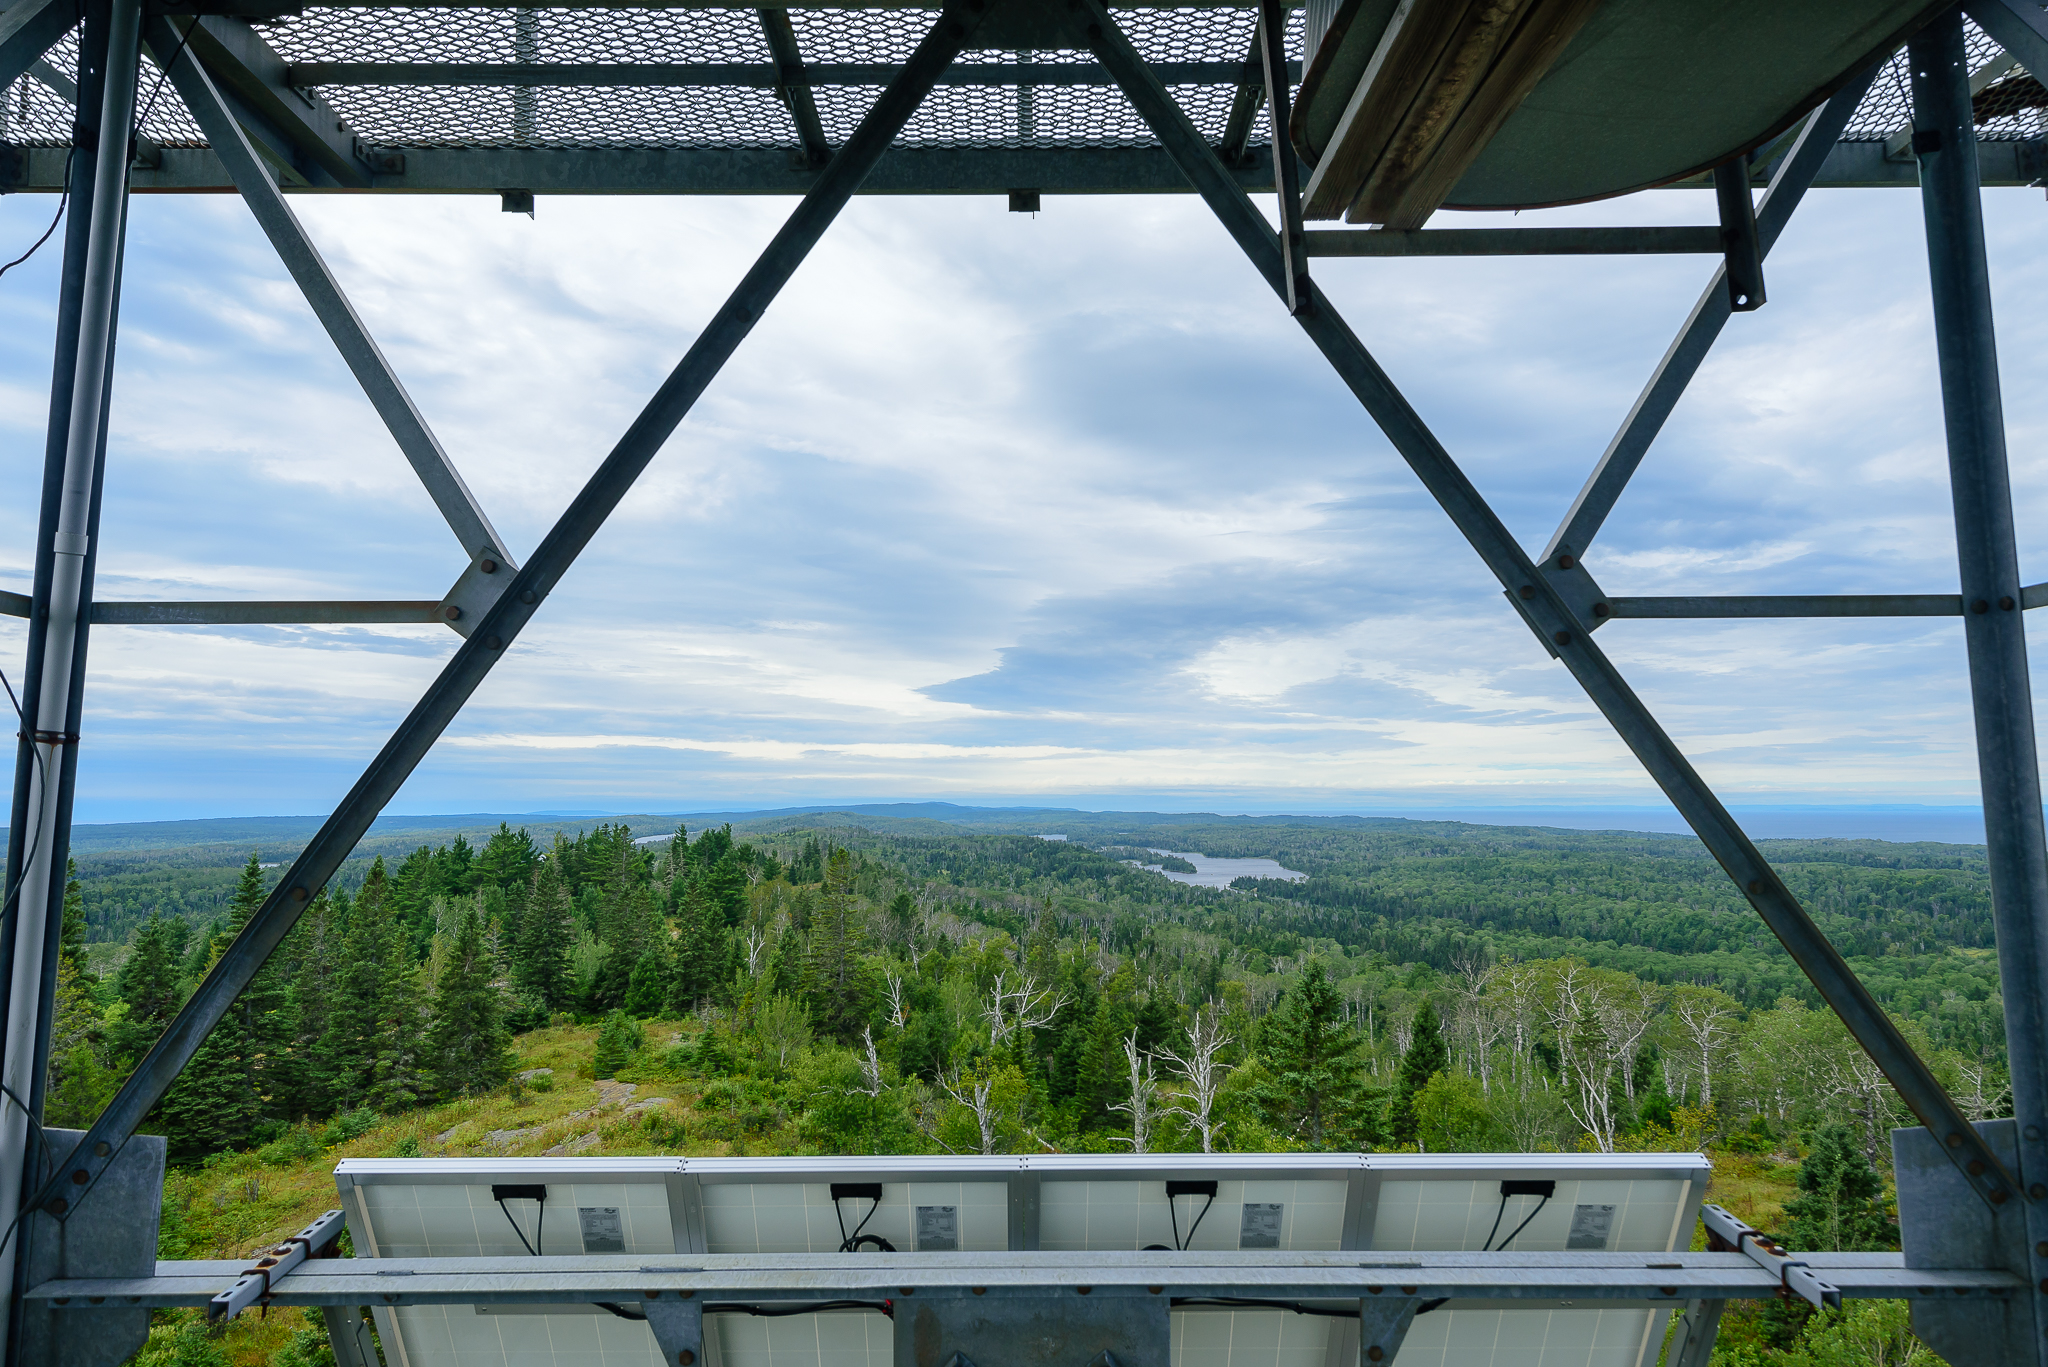 Full 360 island views are revealed from the upper deck of the Mt. Ojibway observation tower. Isle Royale, NP.